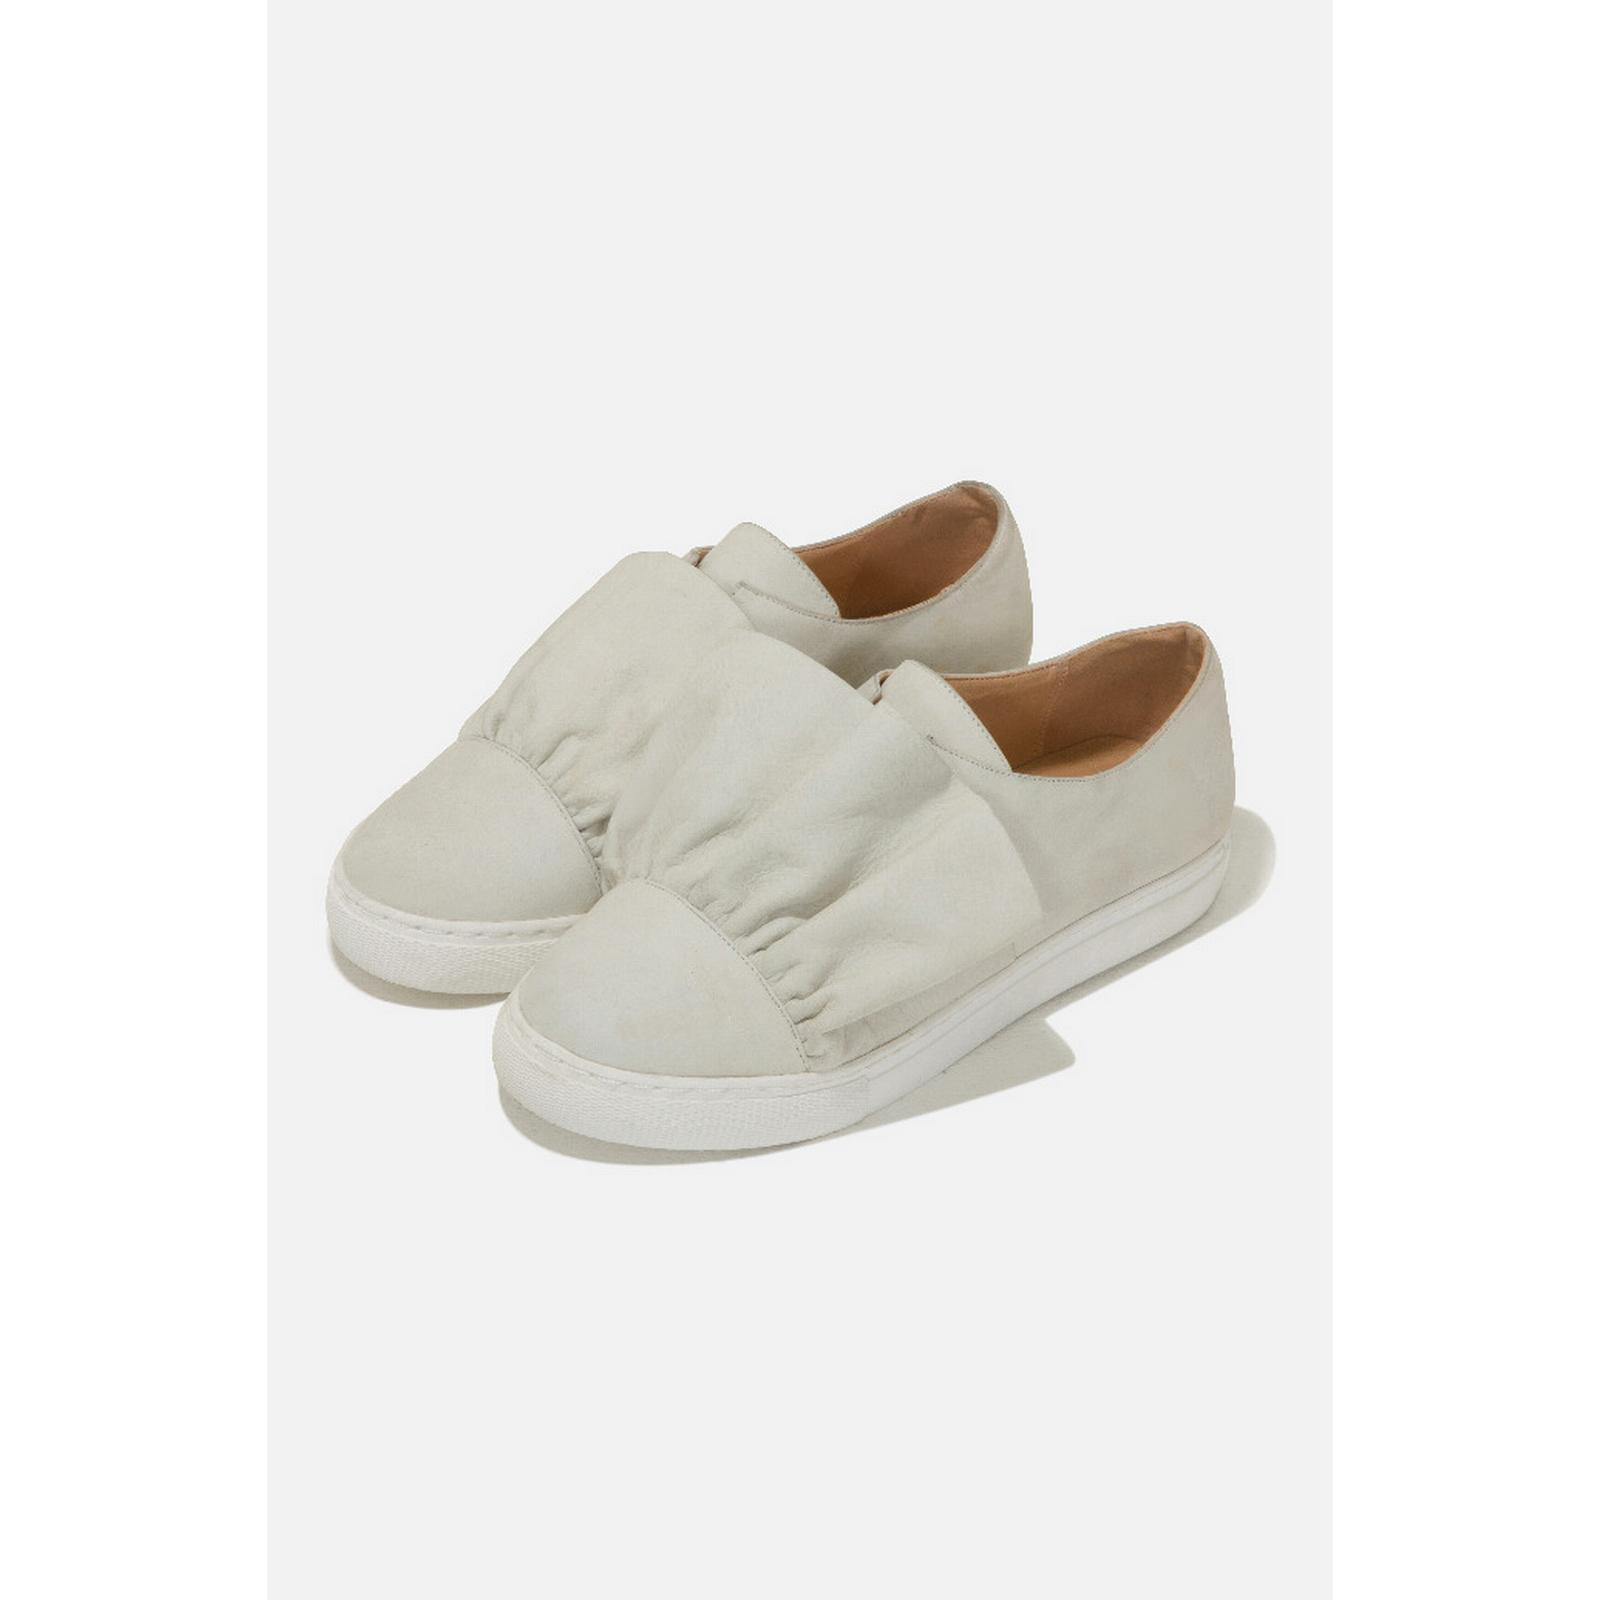 Lavish Alice Leather Ruffle Size Trainers in Stone - Size Ruffle EU 40 c21a21